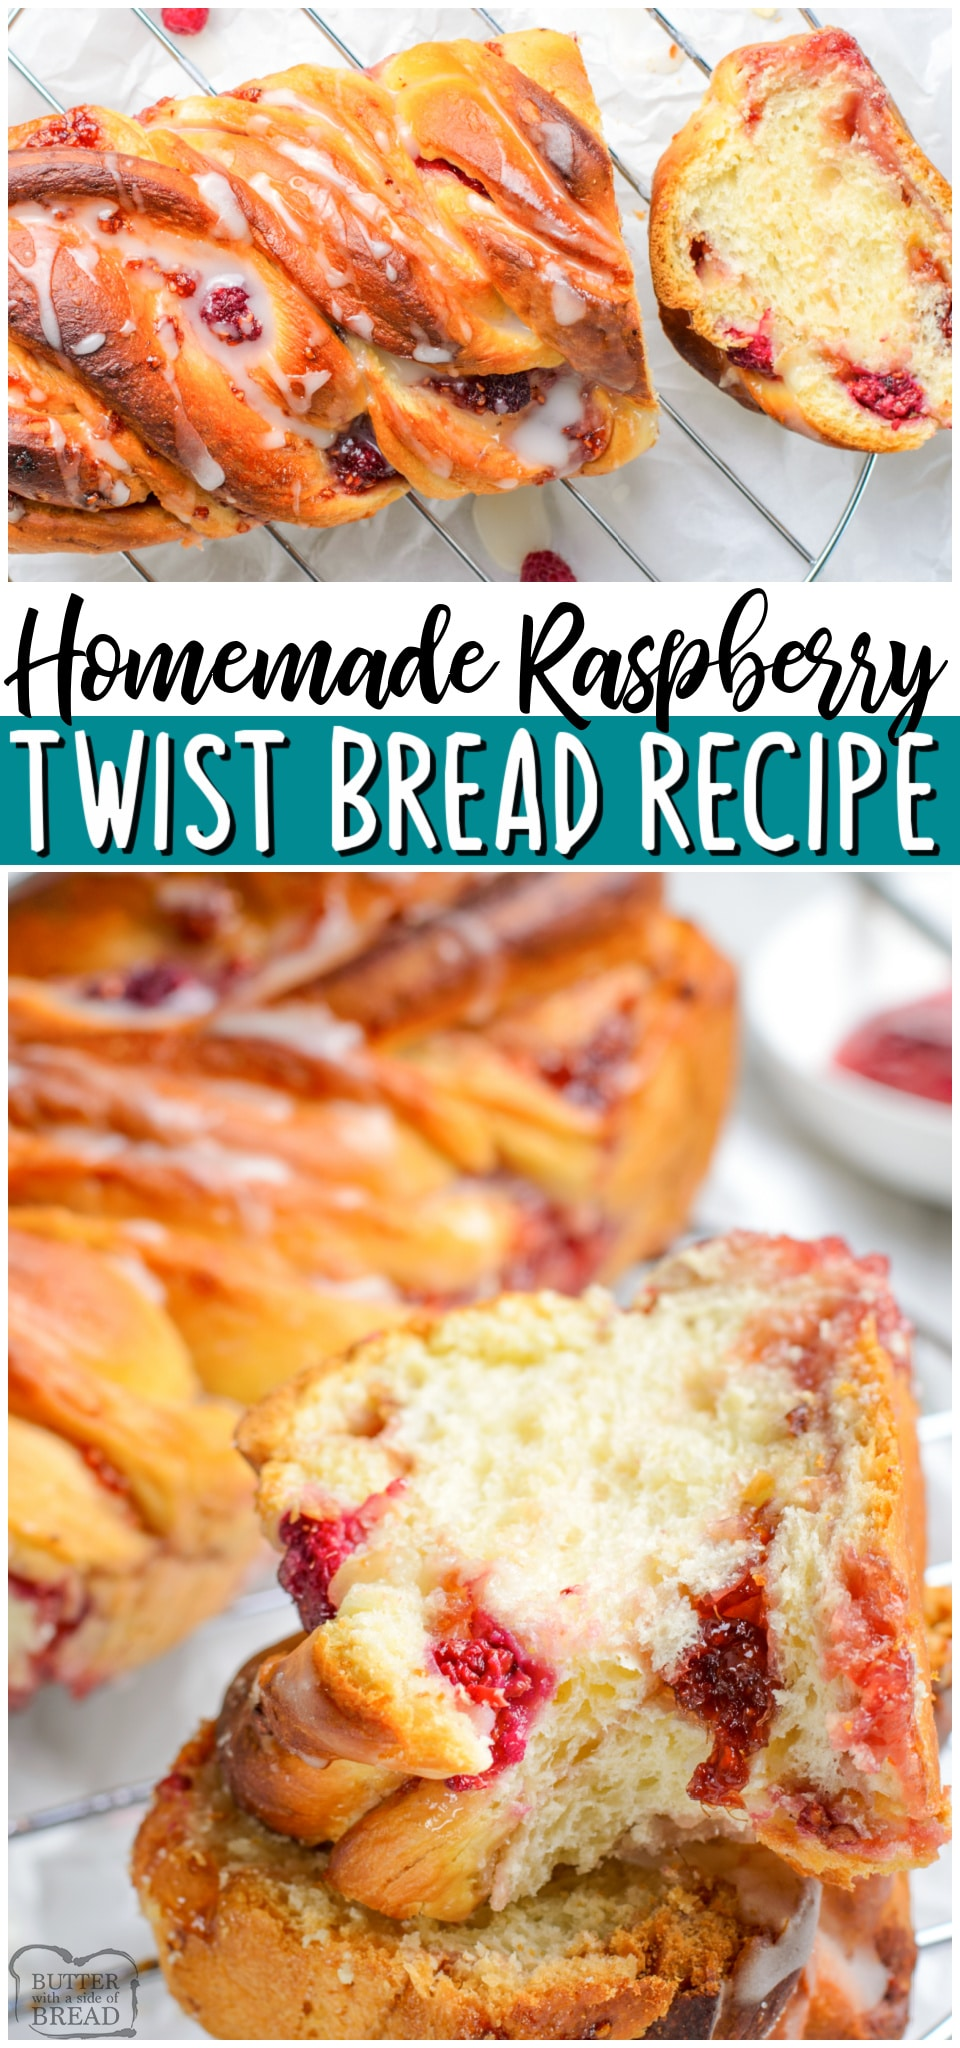 Raspberry Twist Bread is a delicious loaf of homemade sweet bread swirled with raspberry jam. Served with lemon icing and brioche-style dough this bread is perfect for breakfast or dessert!